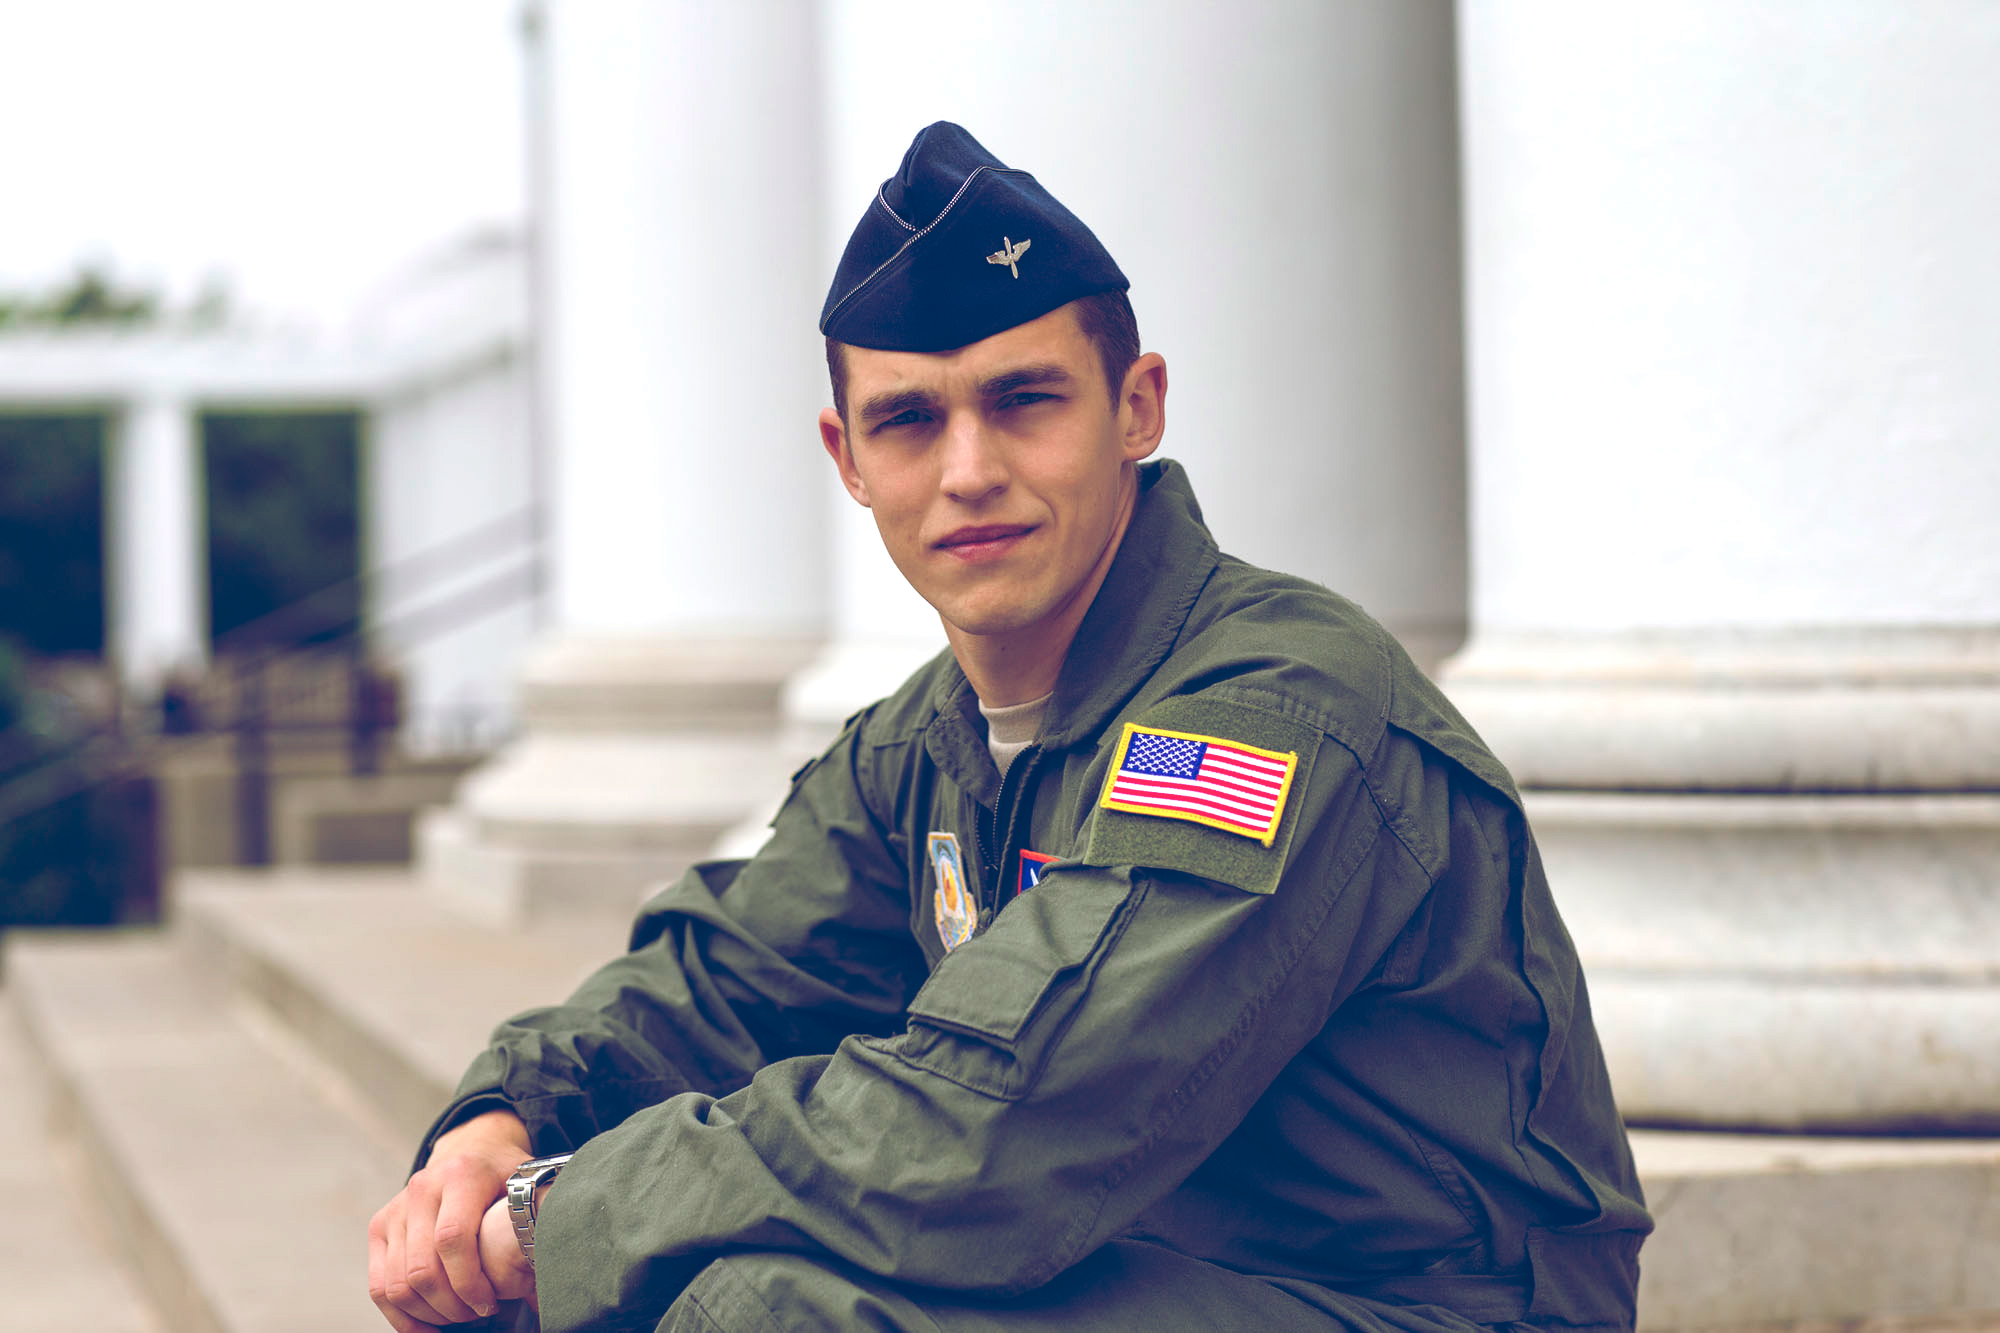 University of Virginia Air Force Cadet Nathaniel Jewell